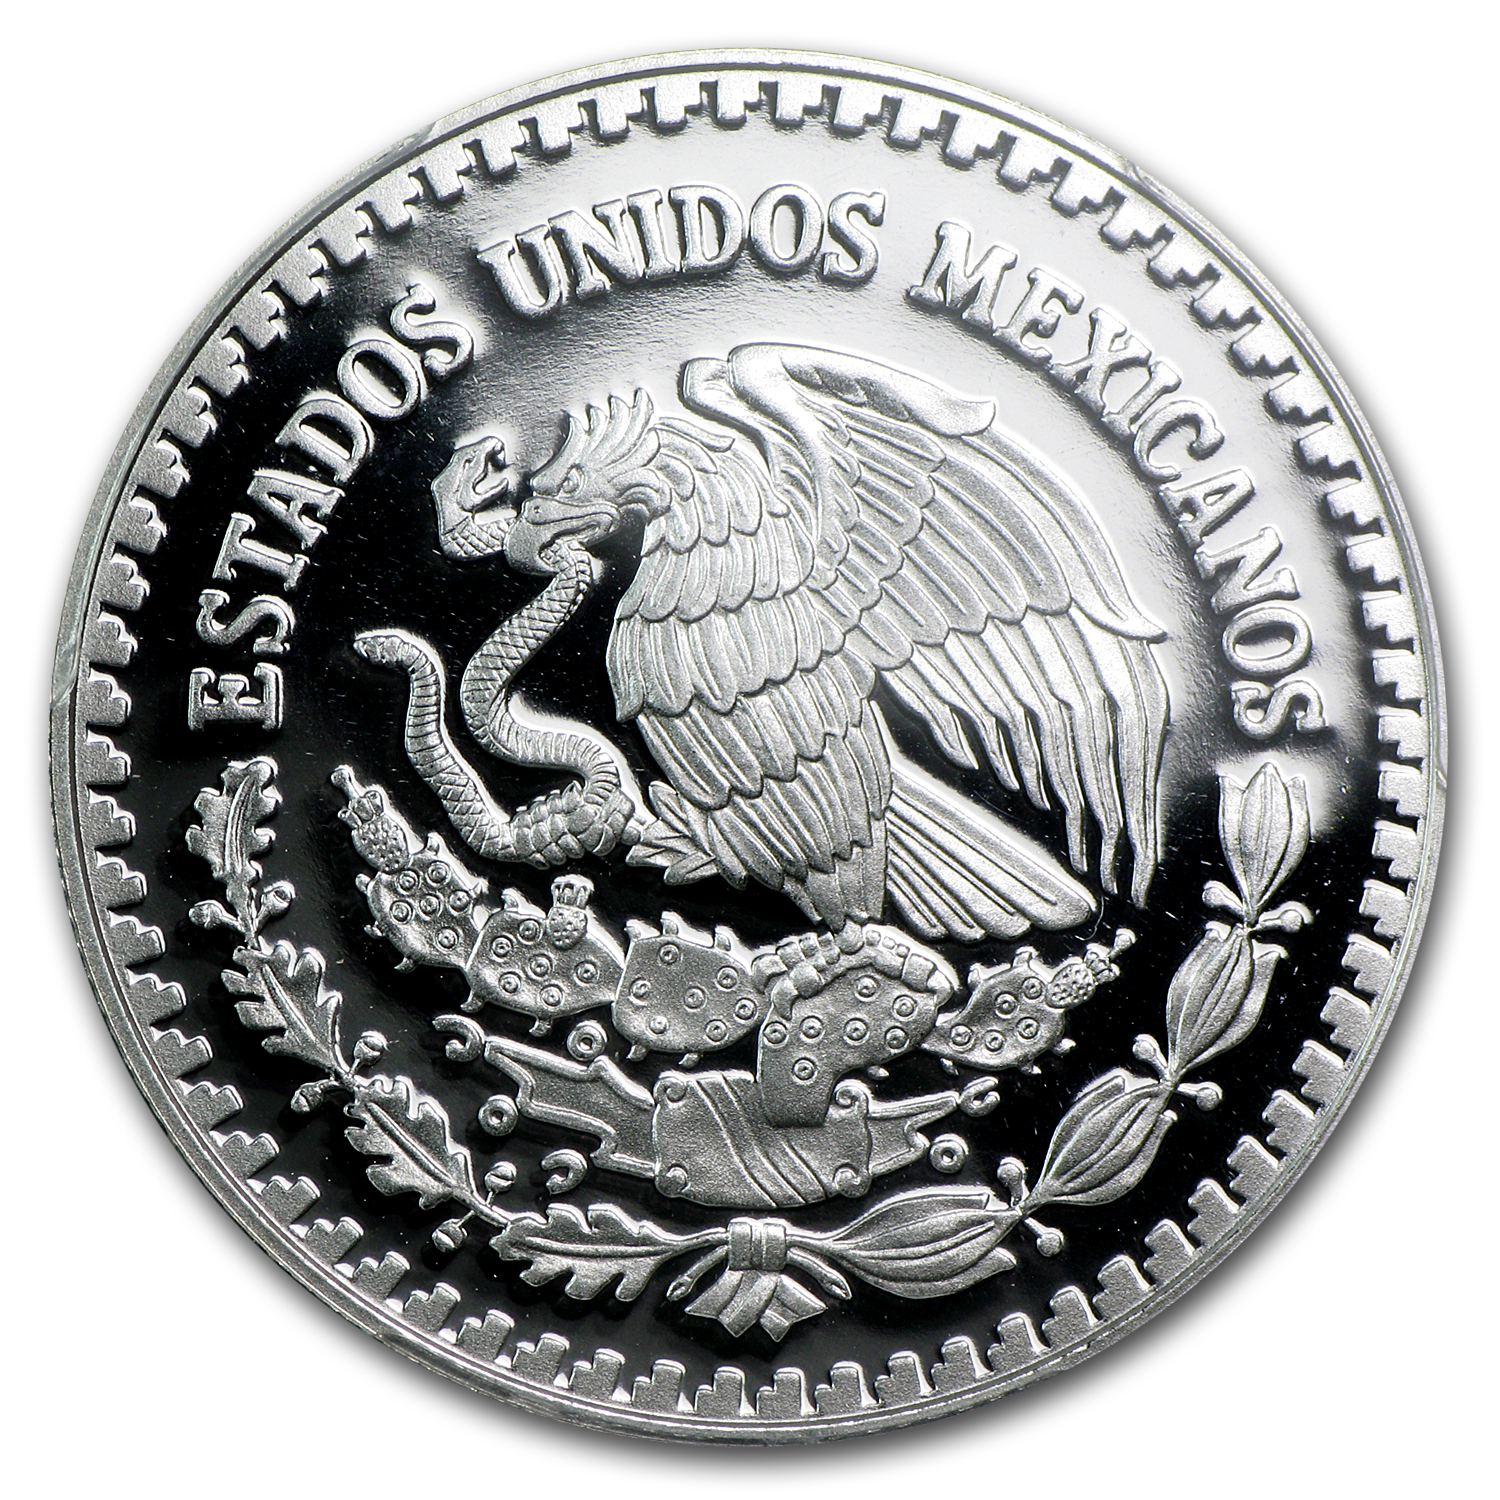 2010 Mexico 1/2 oz Proof Silver Libertad PR-70 PCGS